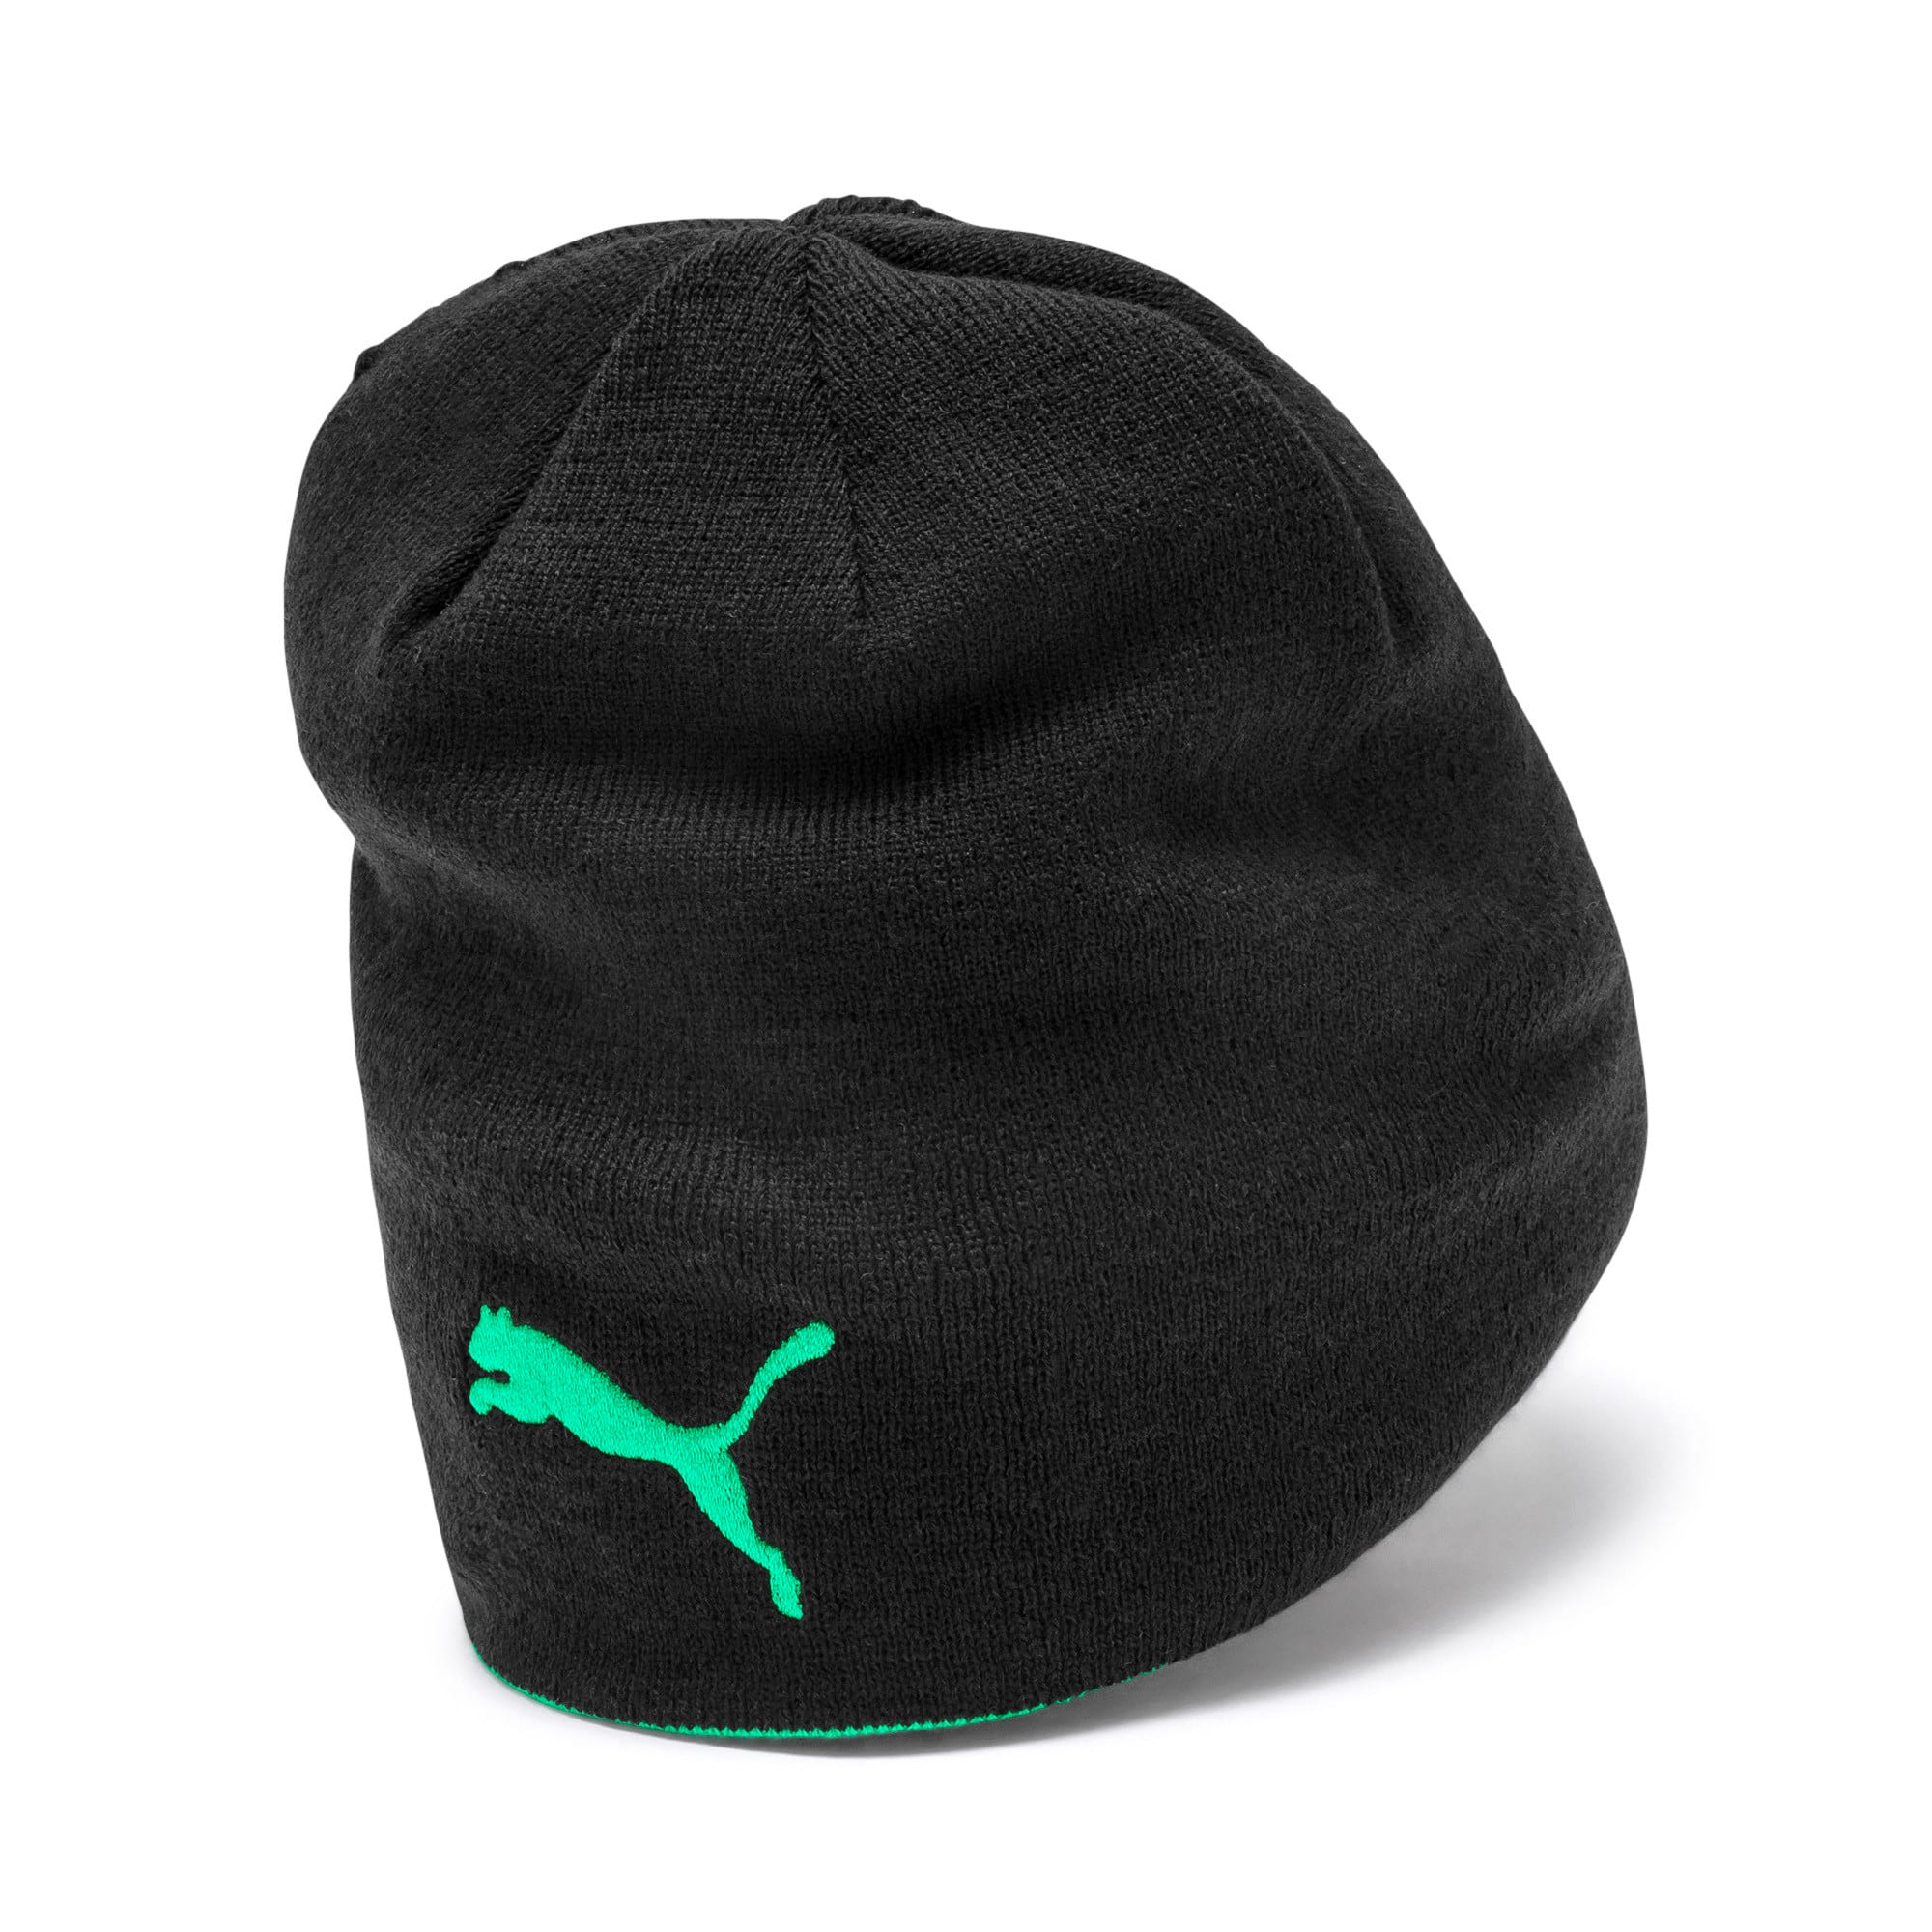 Thumbnail 2 of Bonnet réversible Borussia Mönchengladbach, Puma Black-Bright Green, medium